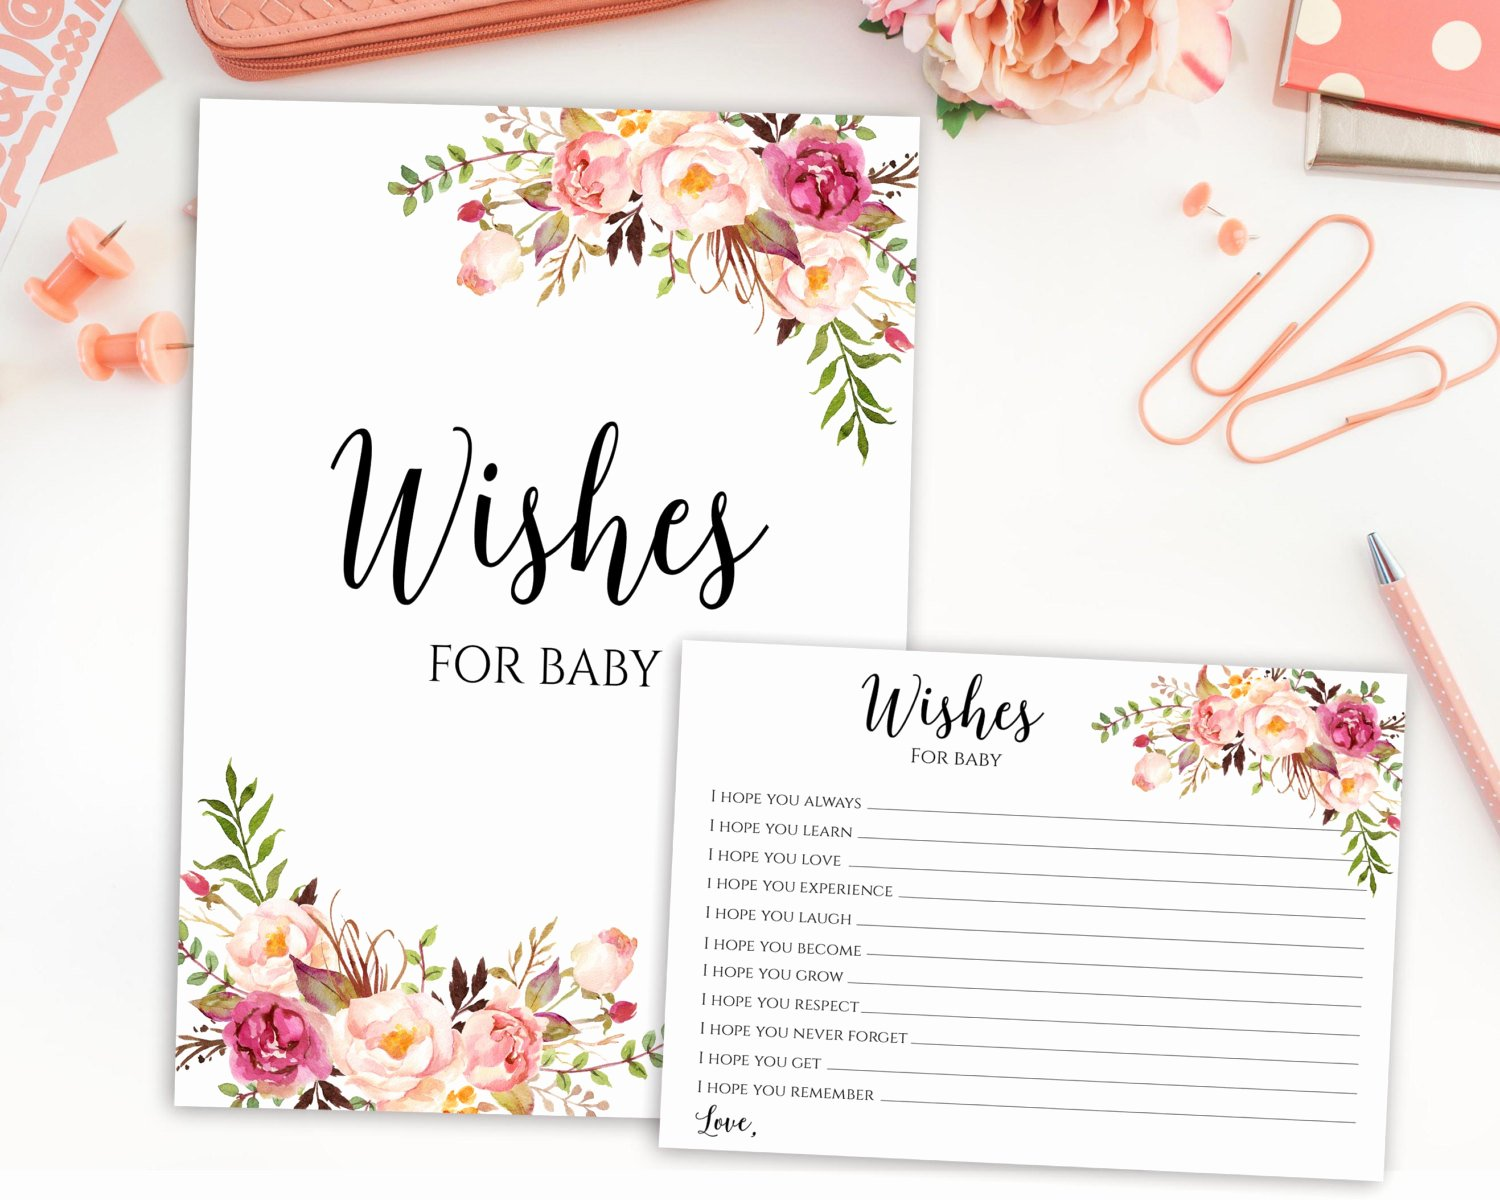 Printable Baby Shower Cards Inspirational Wishes for Baby Baby Shower Printable Wishes for Baby